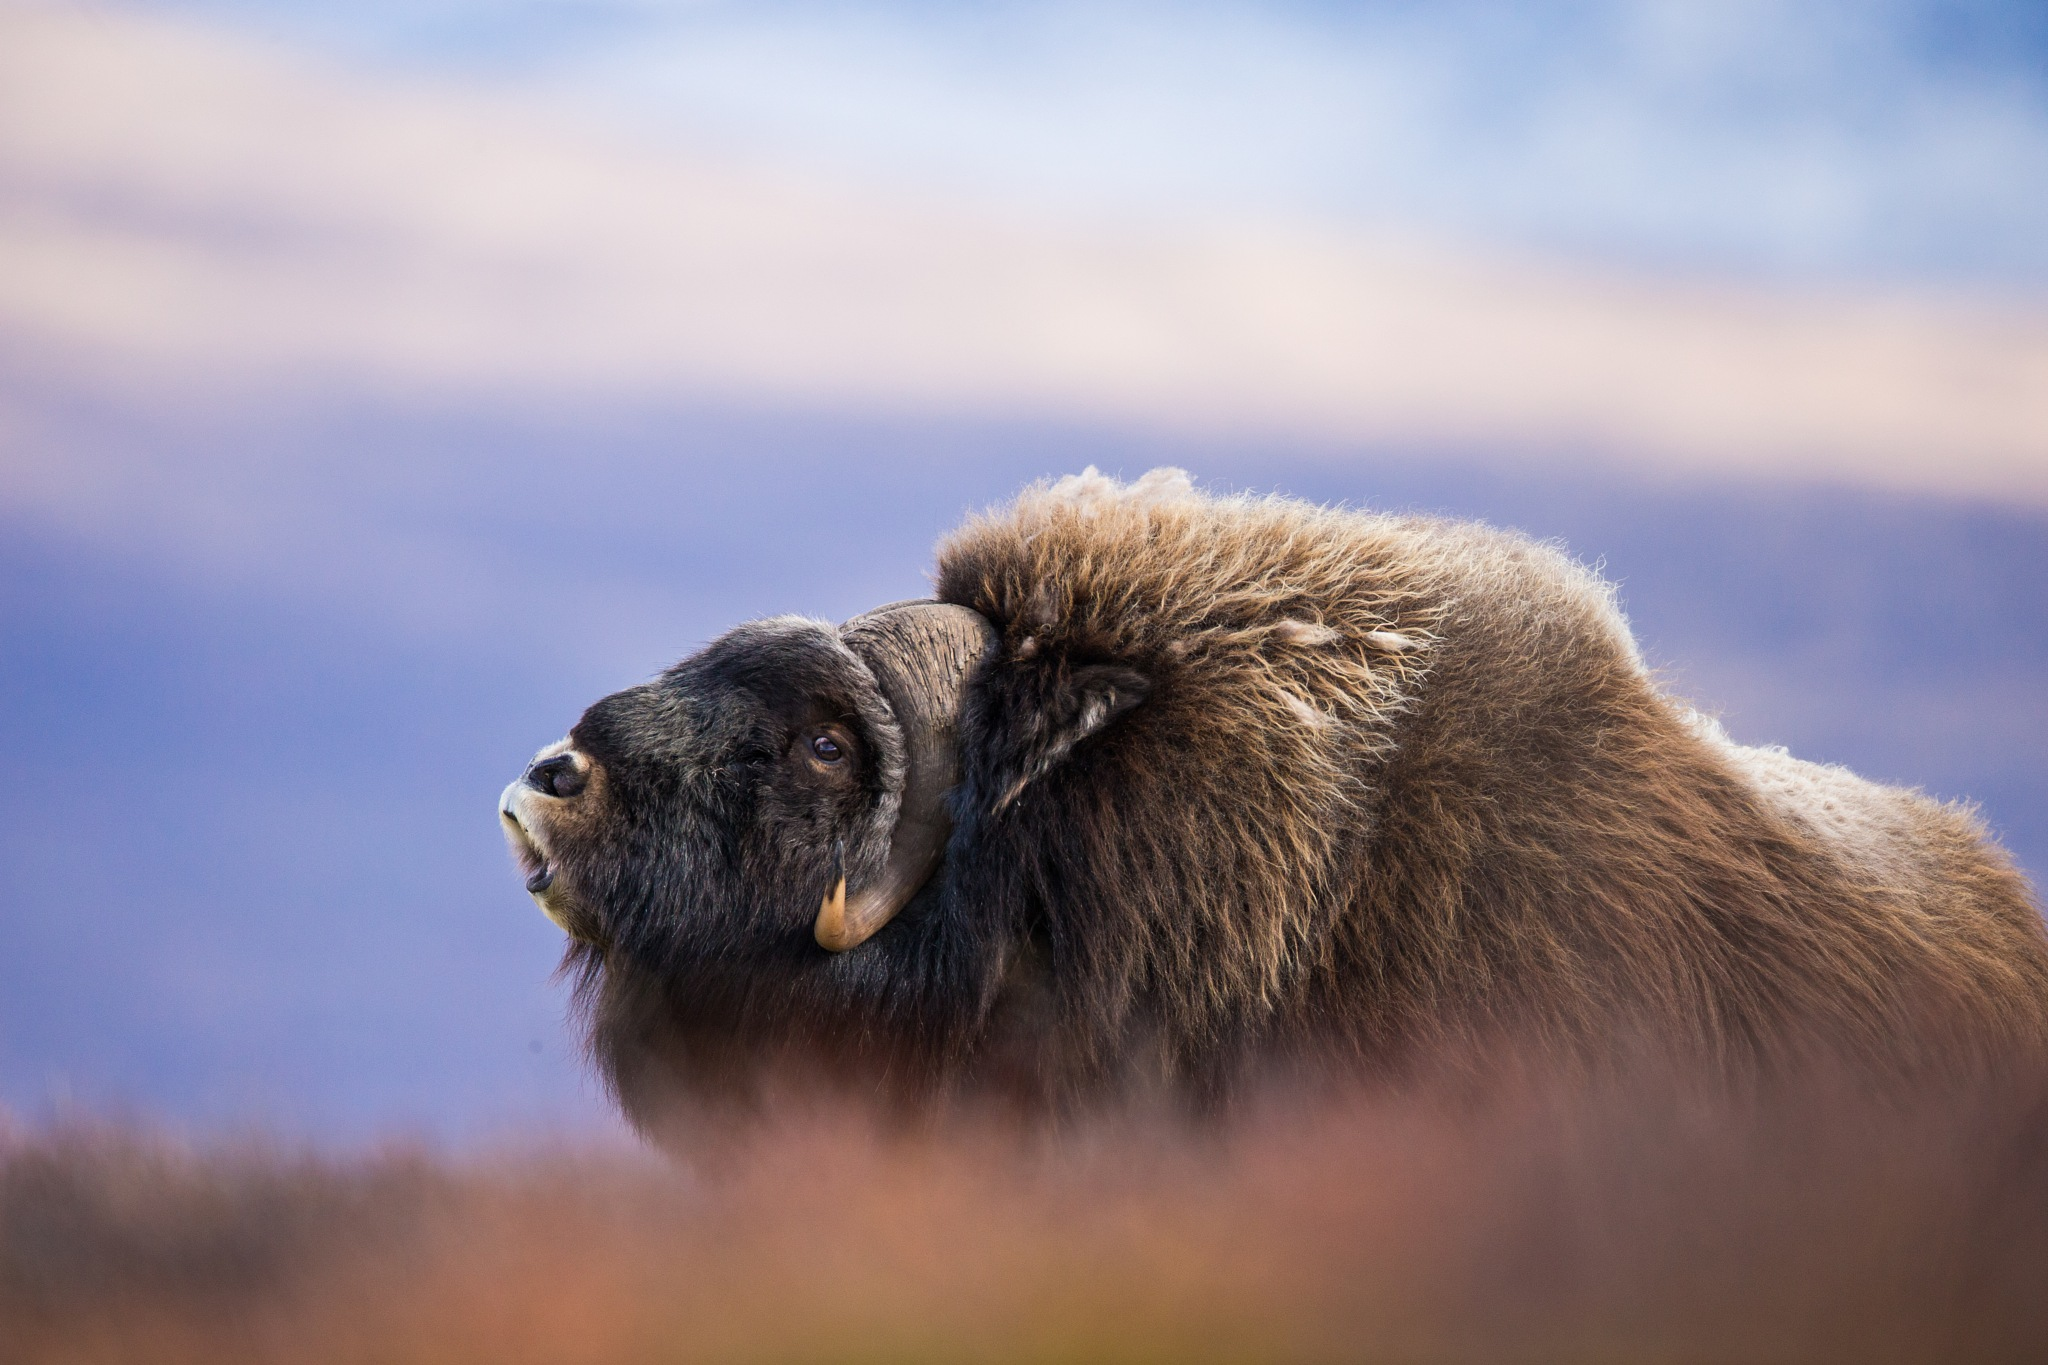 Musk ox 2 by Roger Indgul